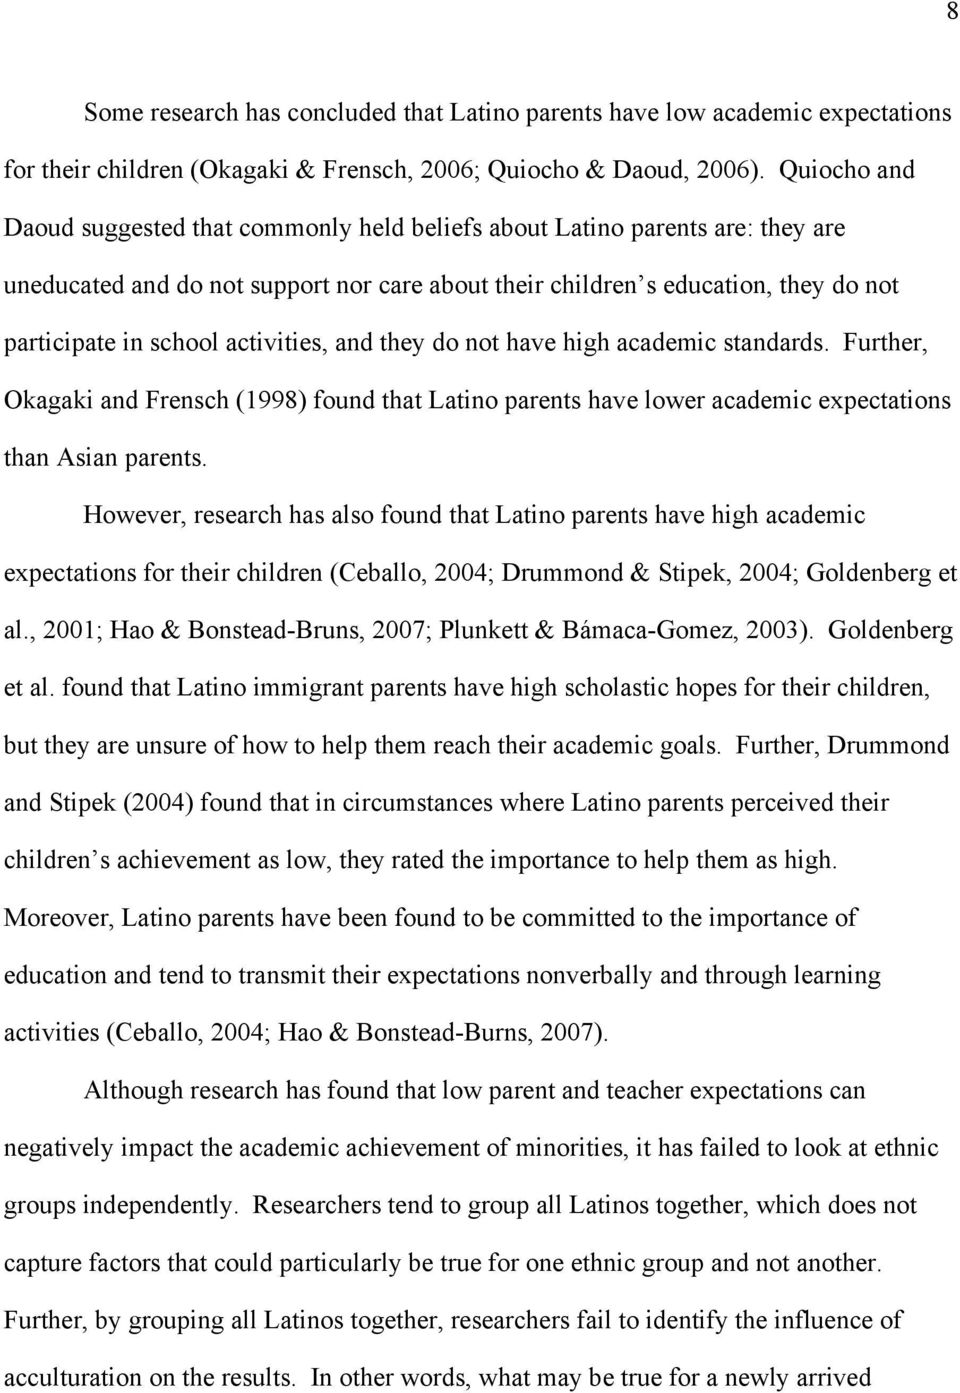 activities, and they do not have high academic standards. Further, Okagaki and Frensch (1998) found that Latino parents have lower academic expectations than Asian parents.